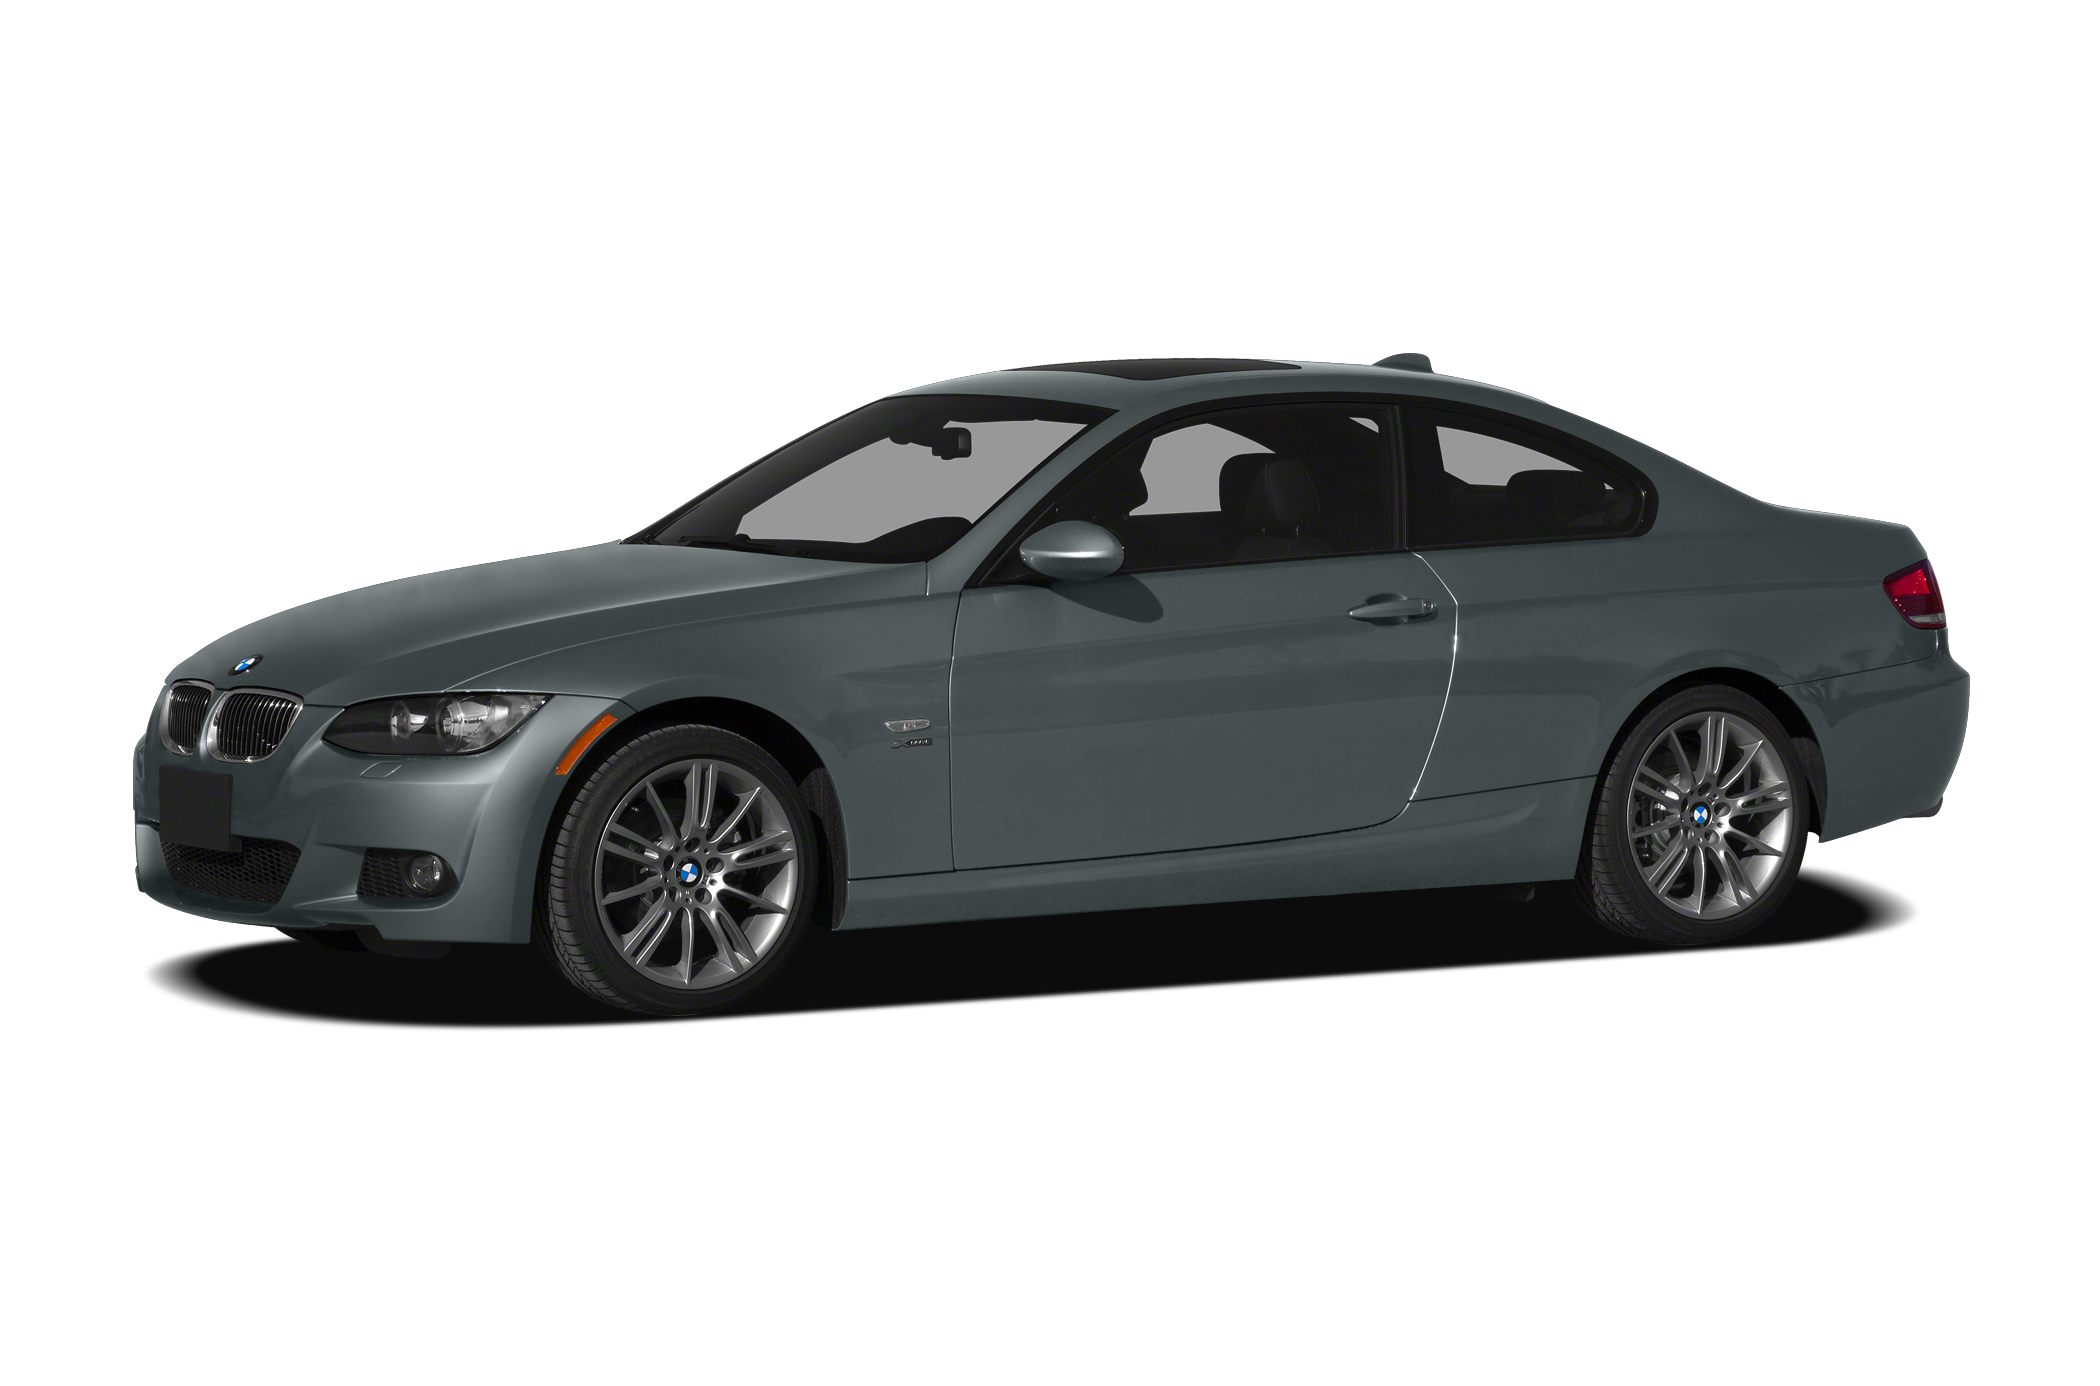 2009 BMW 328 I XDrive Sedan for sale in Mechanicsburg for $17,555 with 63,991 miles